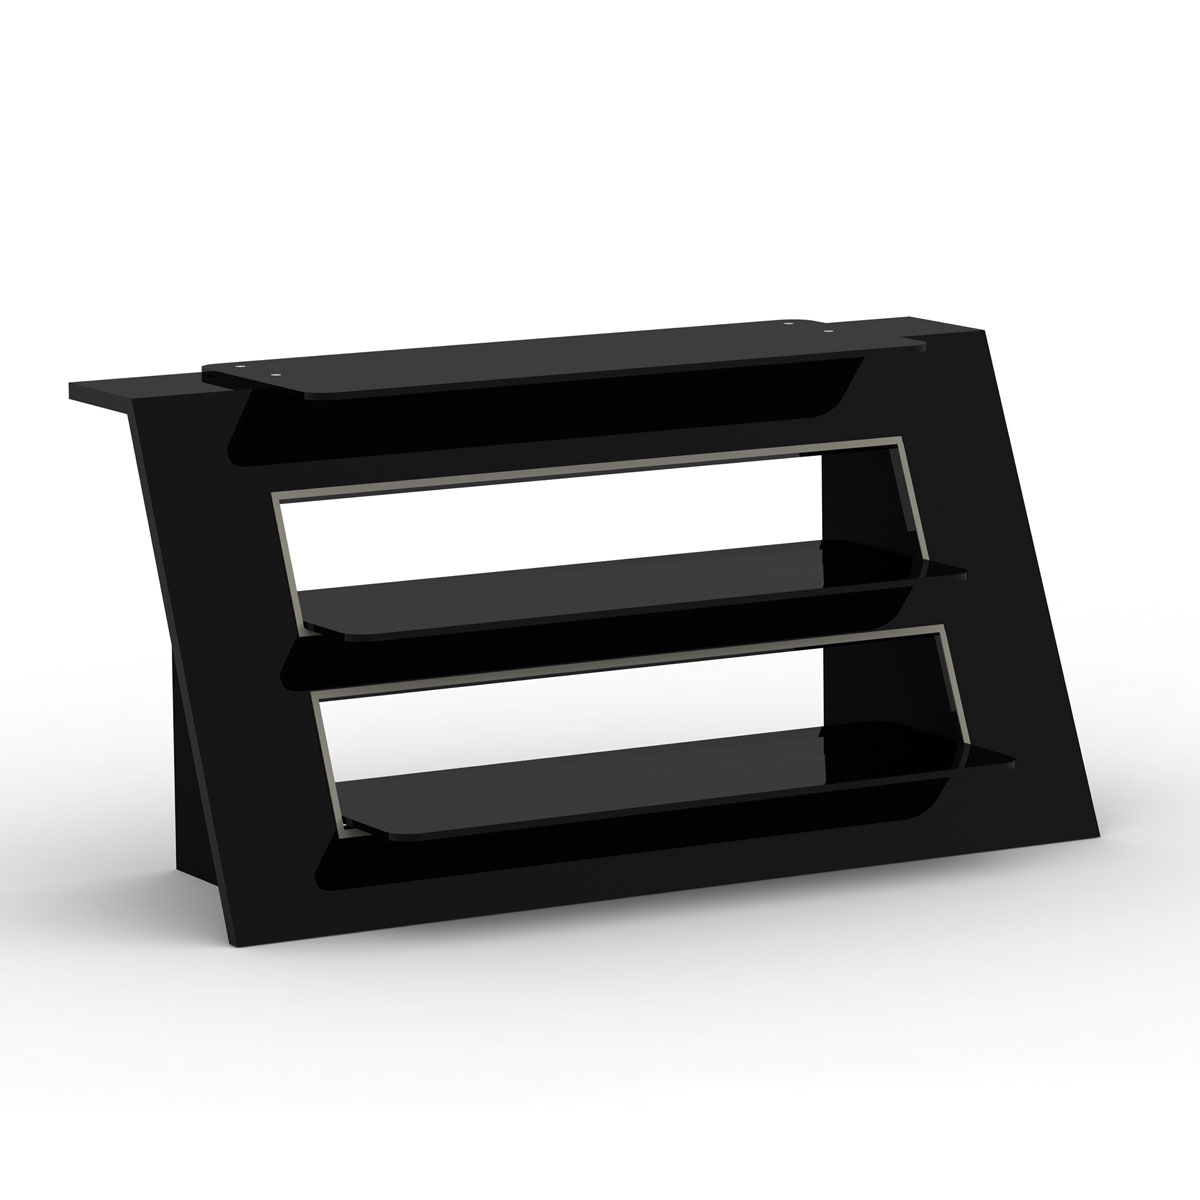 elmob alexa al 110 06 noir meuble tv elmob sur. Black Bedroom Furniture Sets. Home Design Ideas